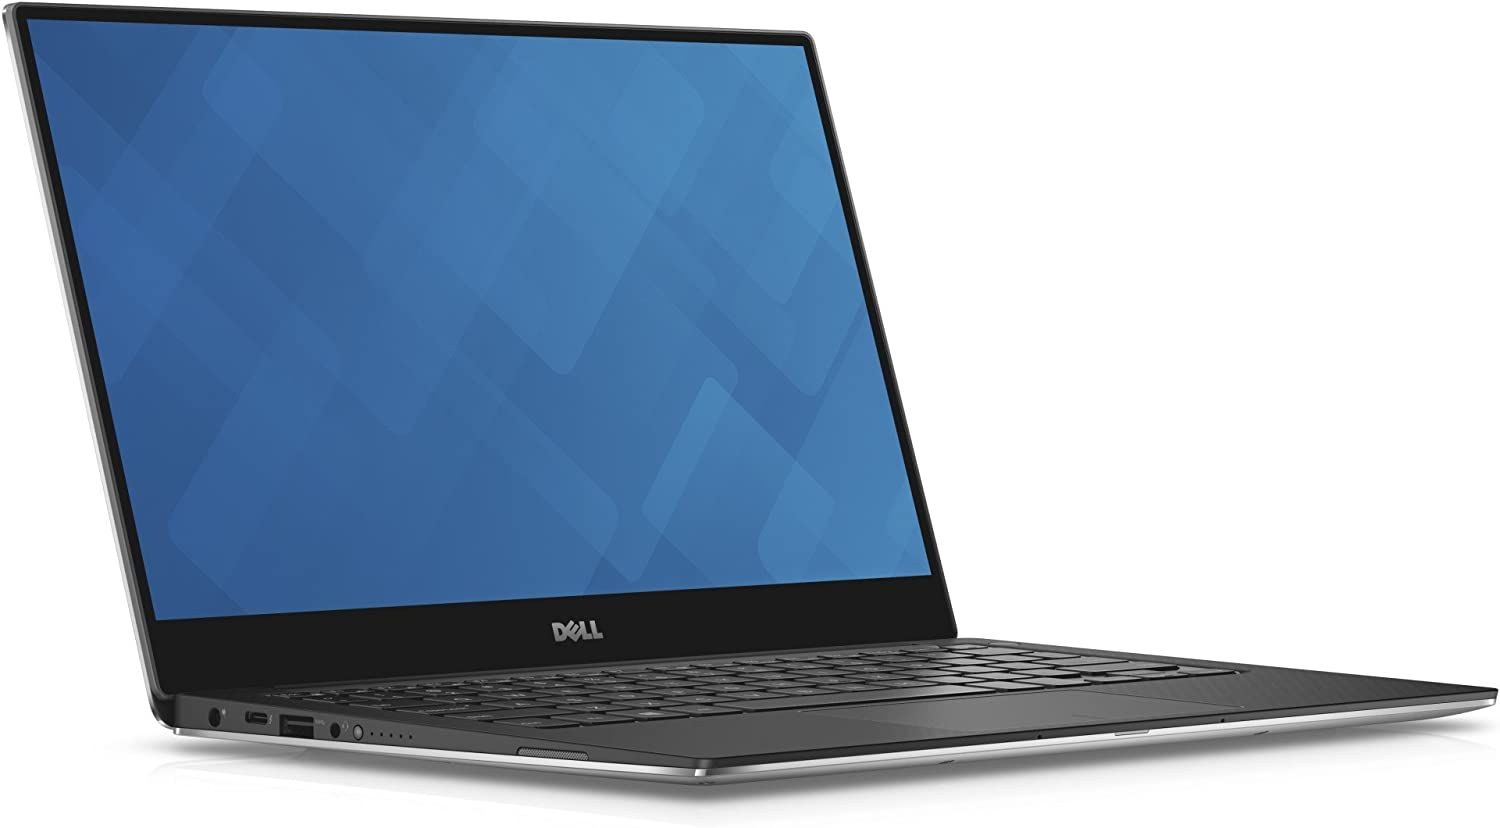 "Dell XPS 13 9360 13.3"" FHD Laptop 8th Gen Intel Core i7-8550U 8GB RAM 256GB SSD Machined Aluminum Display Silver Win 10"